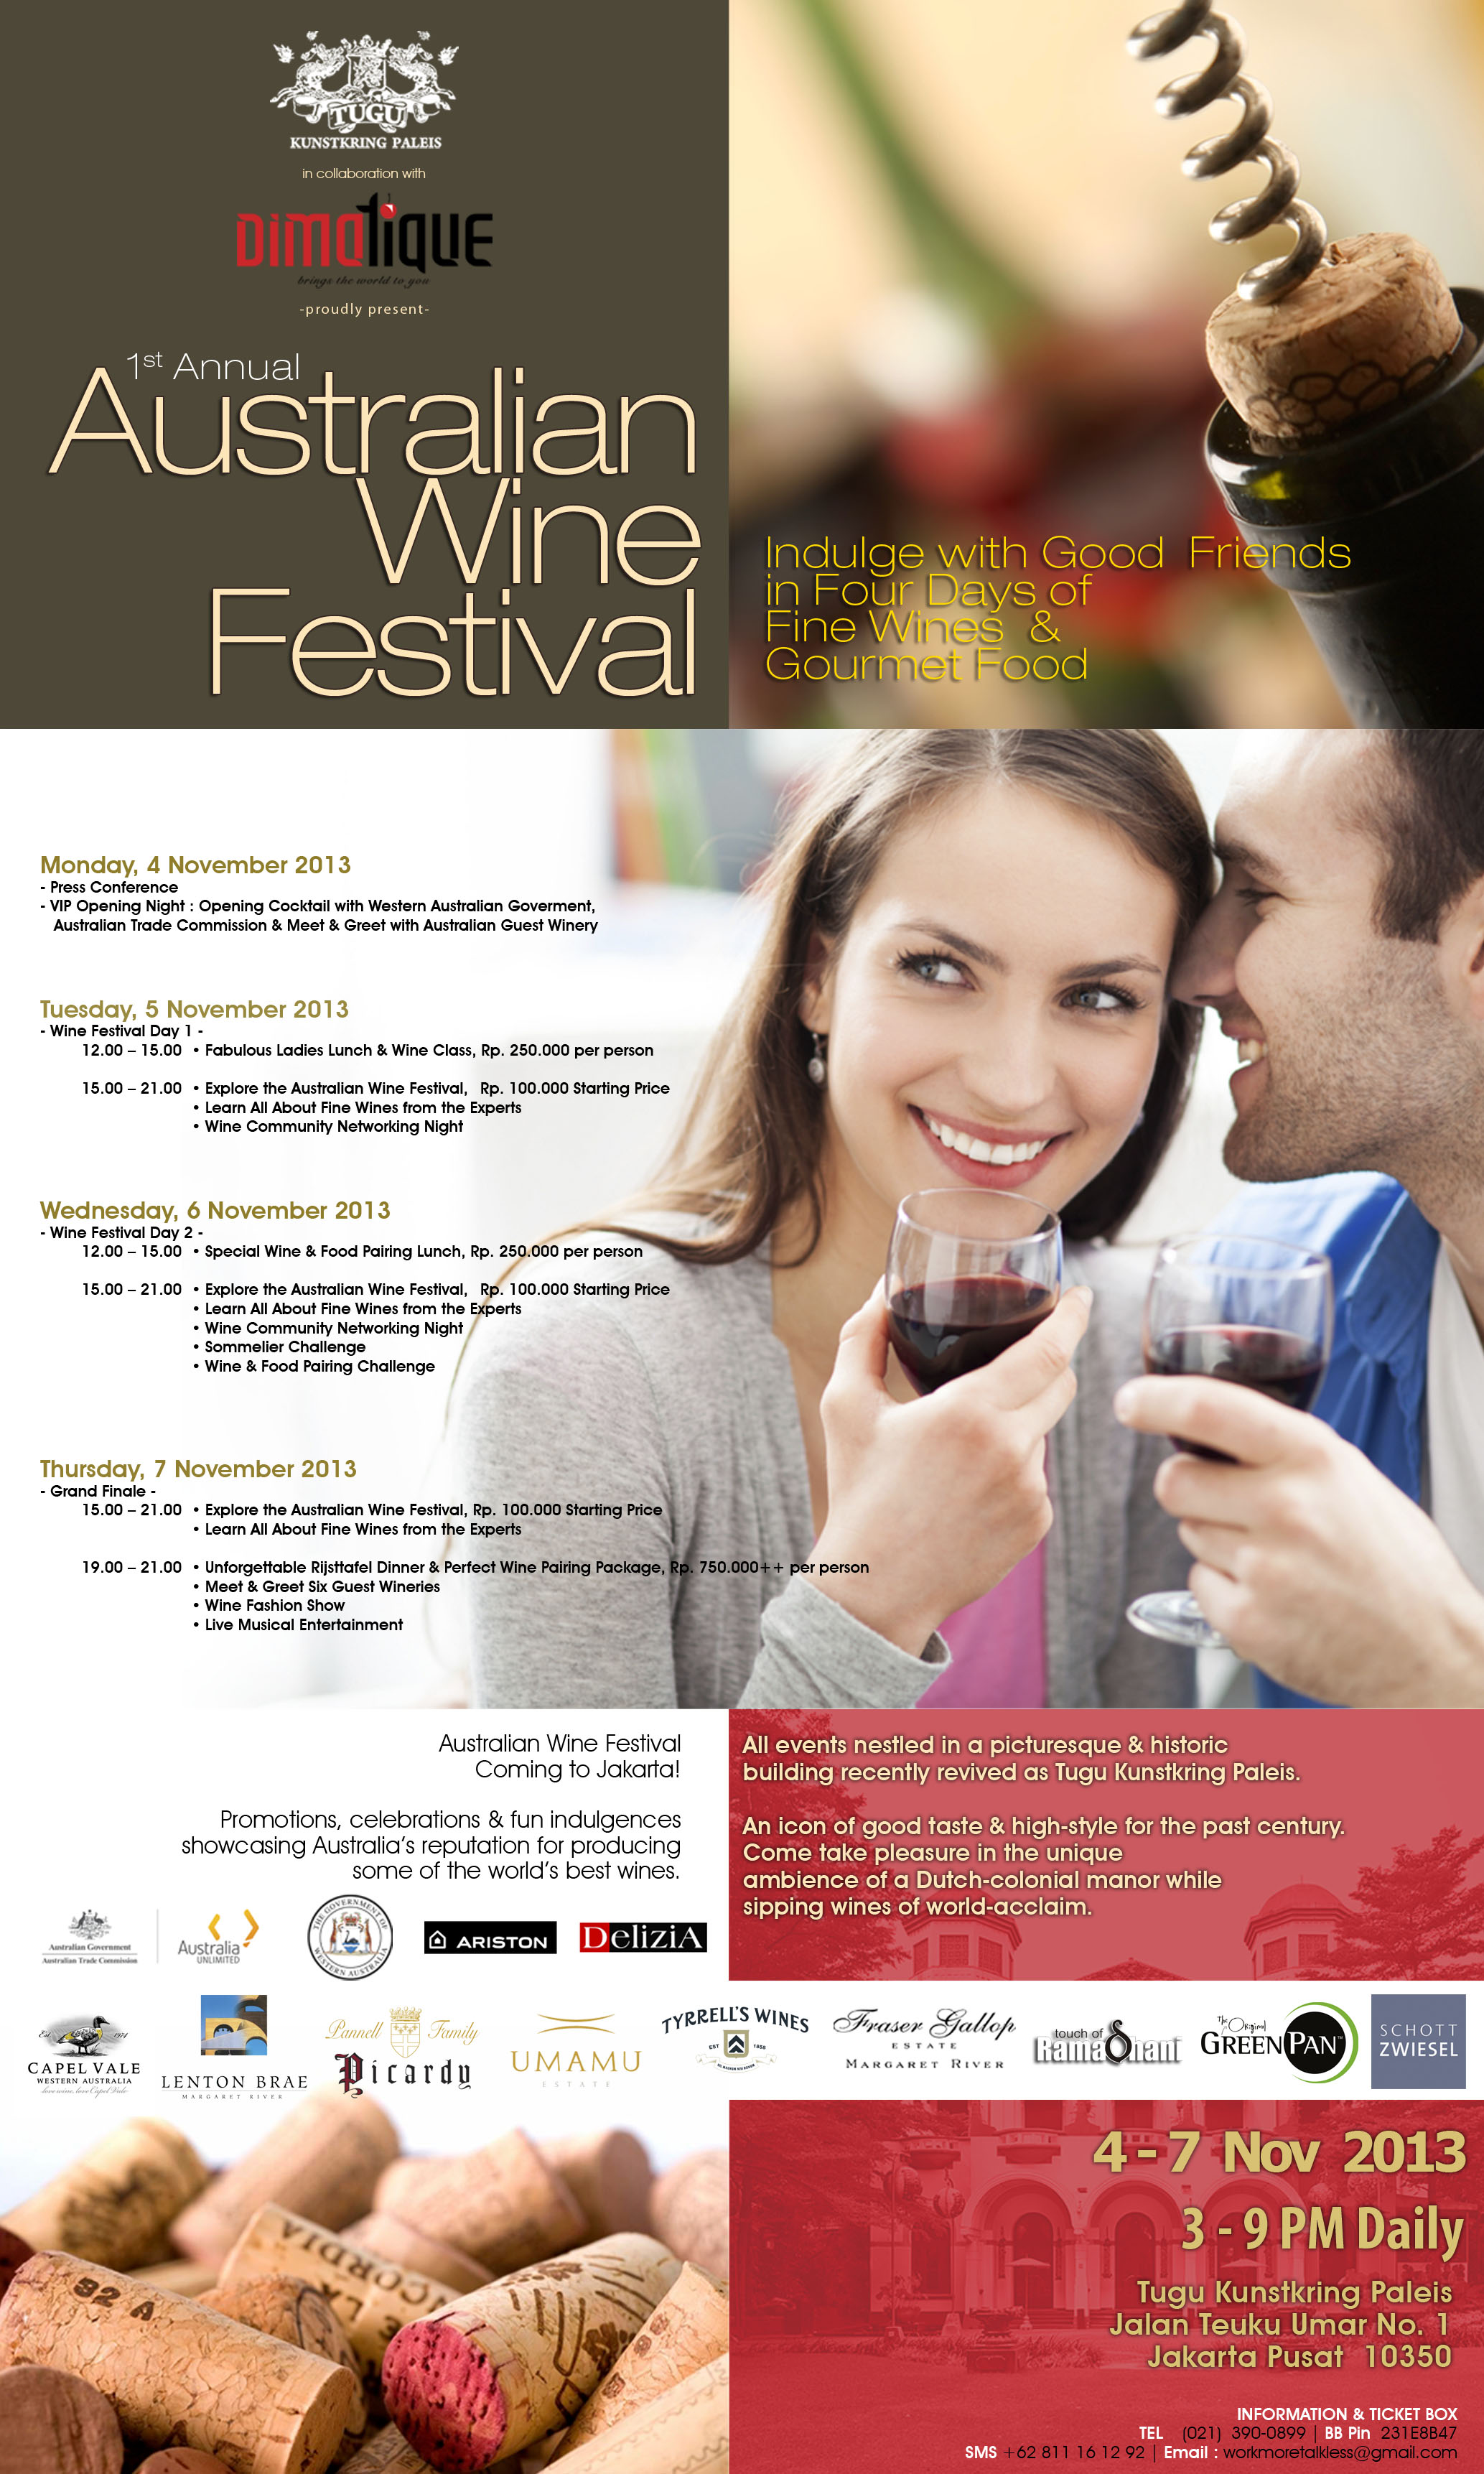 dimotique 1st annual australian wine festival at tugu kunstkring paleis